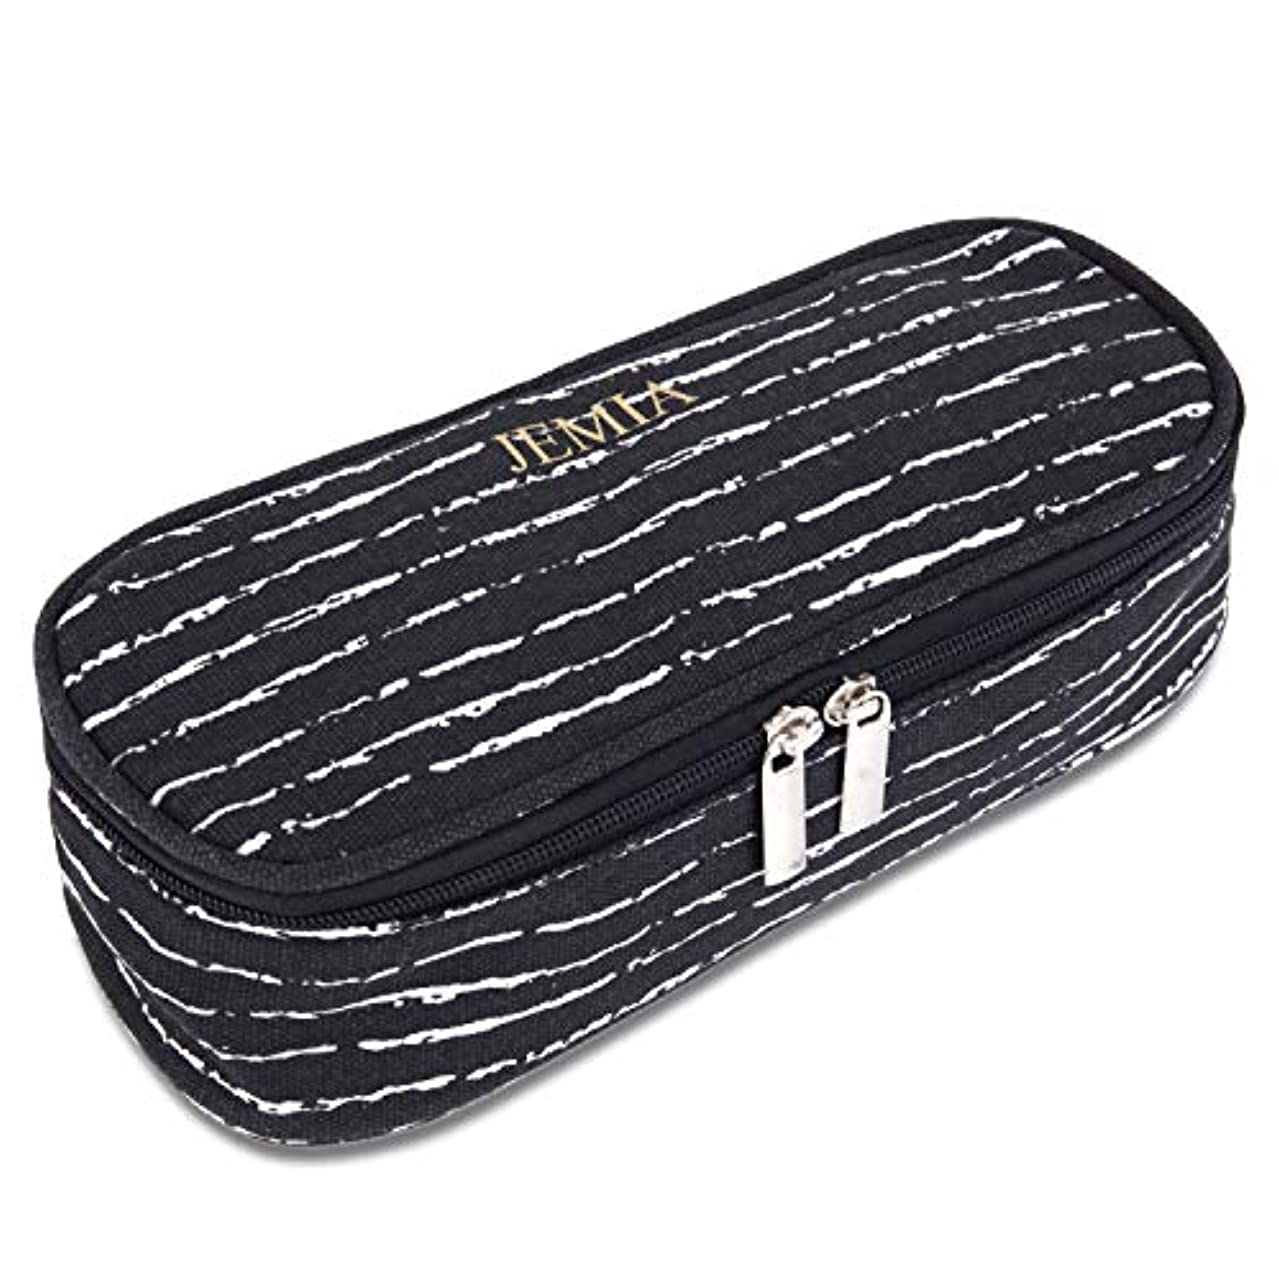 JEMIA - Black White Canvas Pencil Case with Dual Zip Compartment to Hold Office Cosmetic Makeup Supply Accessories in Organized for Kid, Teen Student, Boy, Girl or Adult for Men, Women